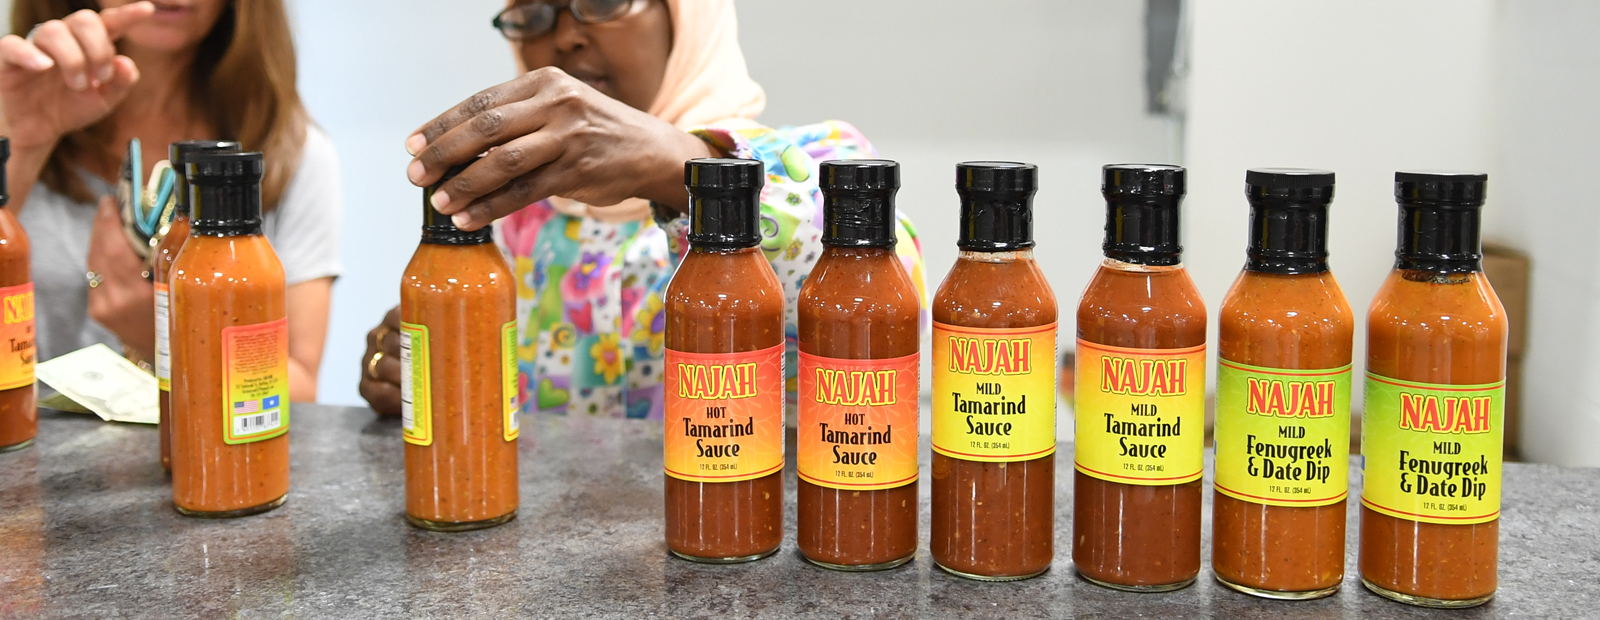 The Najah savory sauce line: owner Bisharo Ali shows product to a new customer